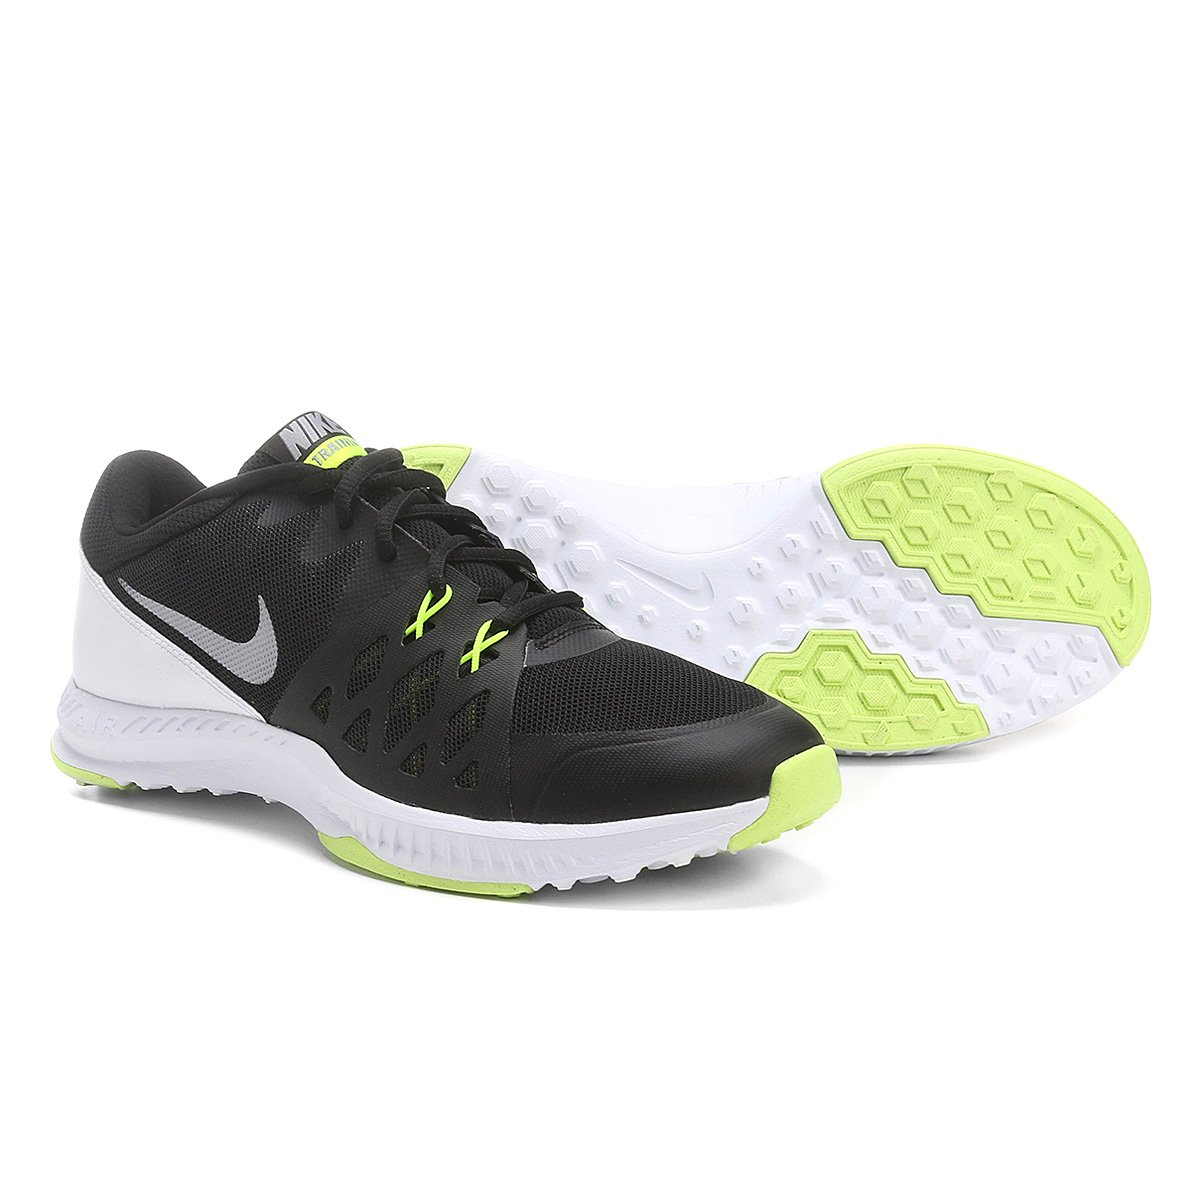 bf02eed4ad3 Tênis Nike Air Epic Speed TR 2 Masculino - Compre Agora